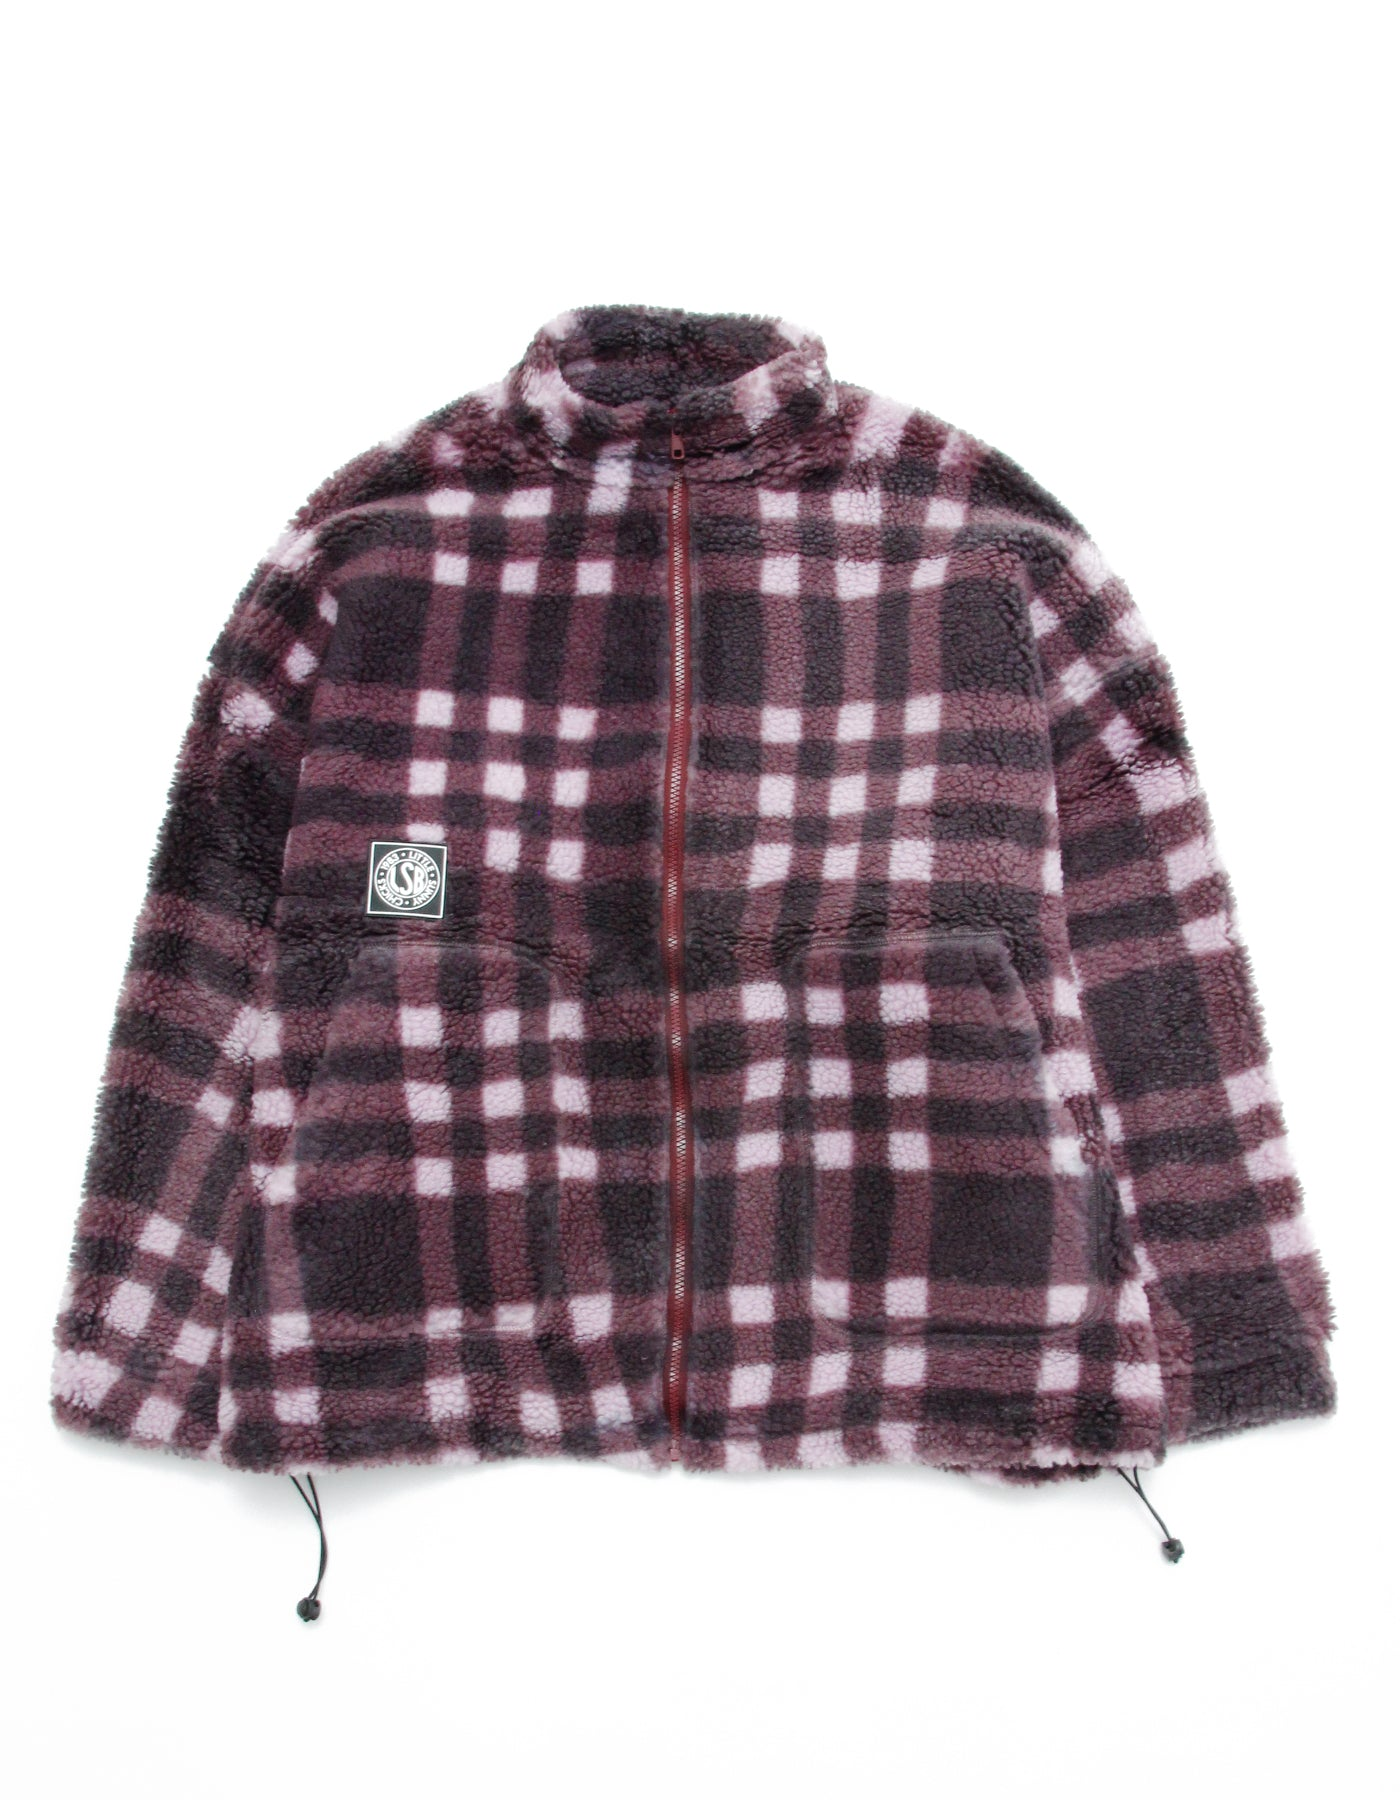 Original checked boa jacket / PURPLE